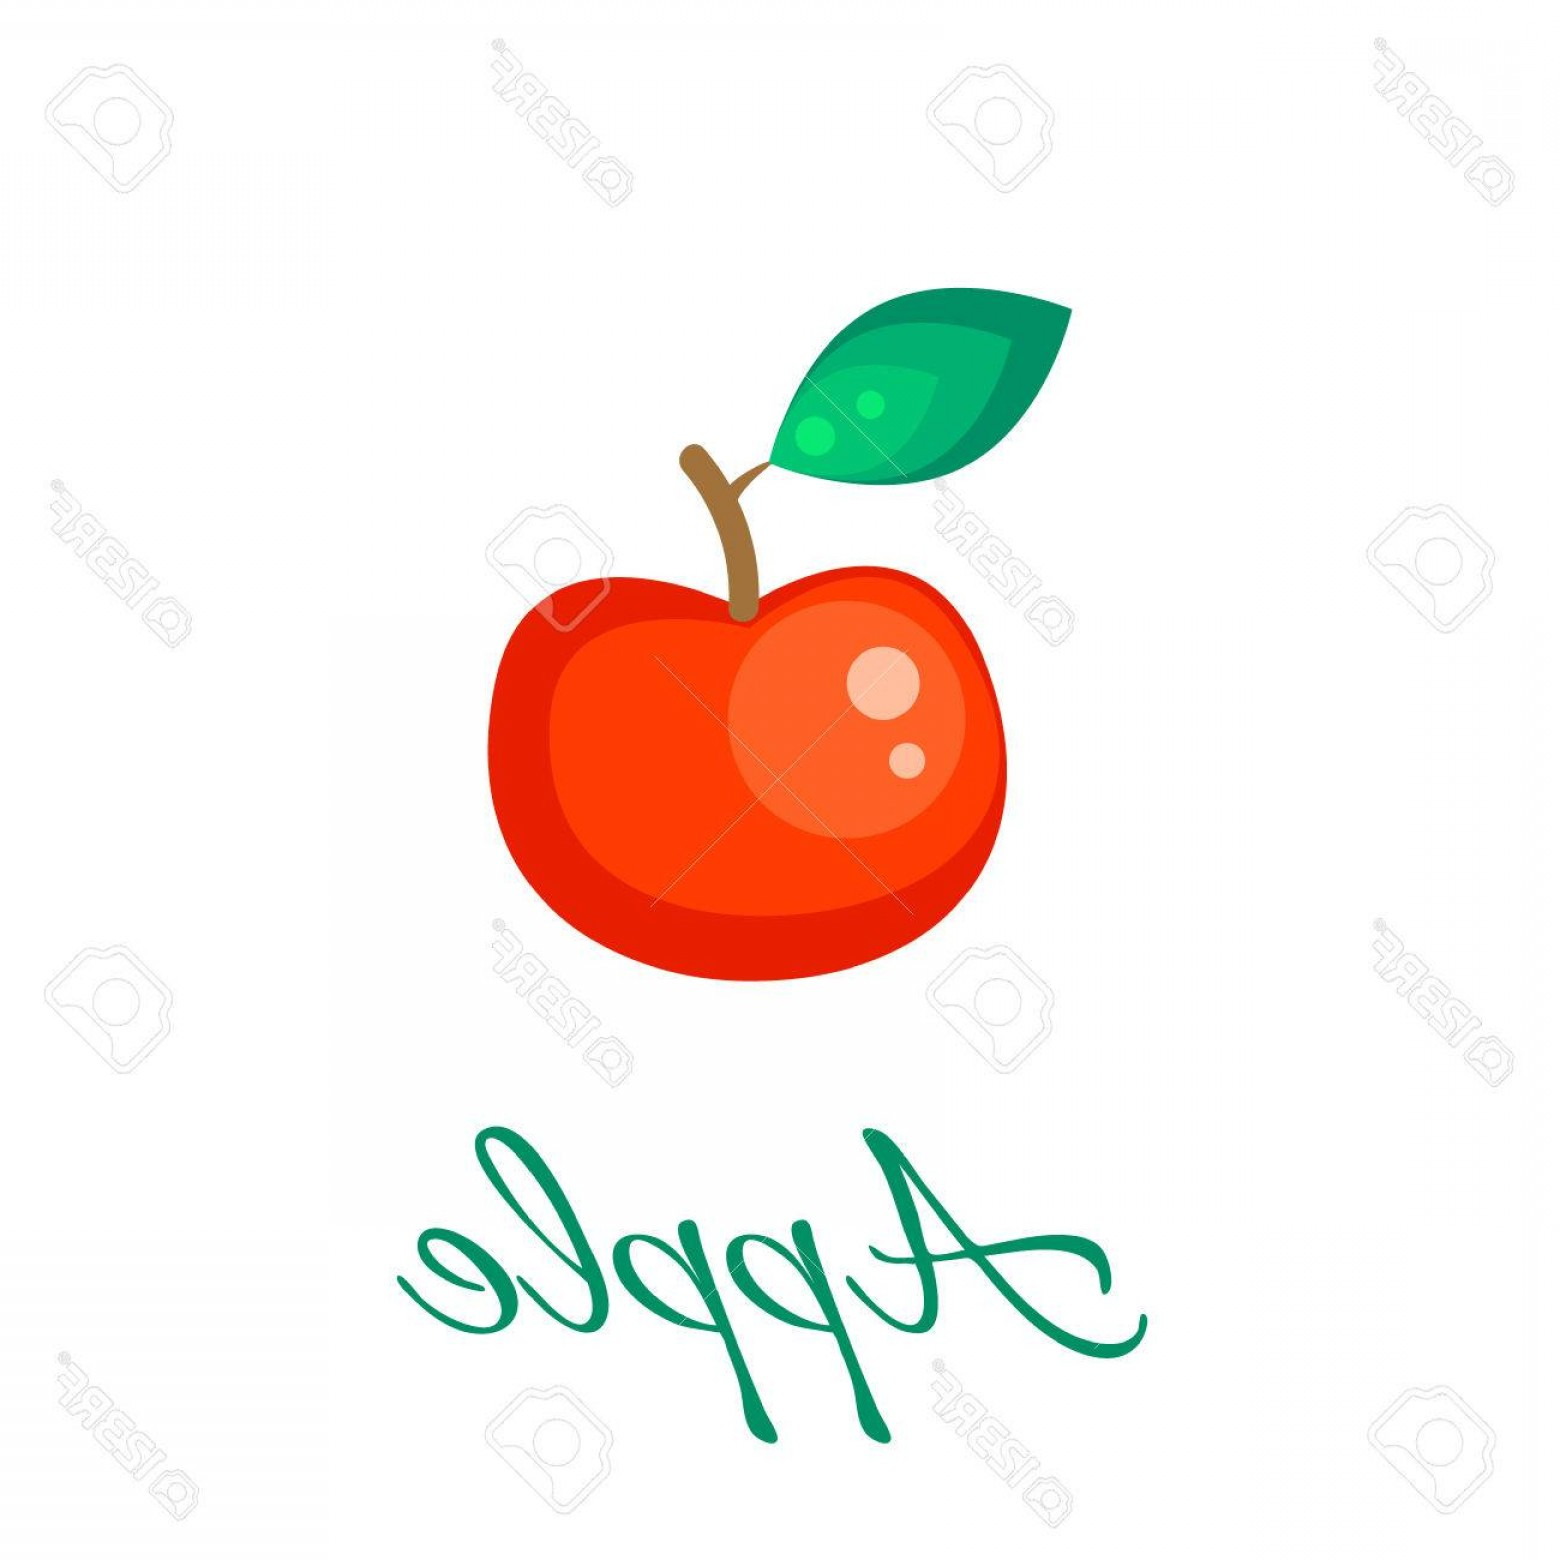 Red Apple Vector Logo: Photostock Vector Red Apple Isolated Vector Icon Apple Fruit On Branch With Leaf Red Apple Logo Apple Juice Or Jam Bra